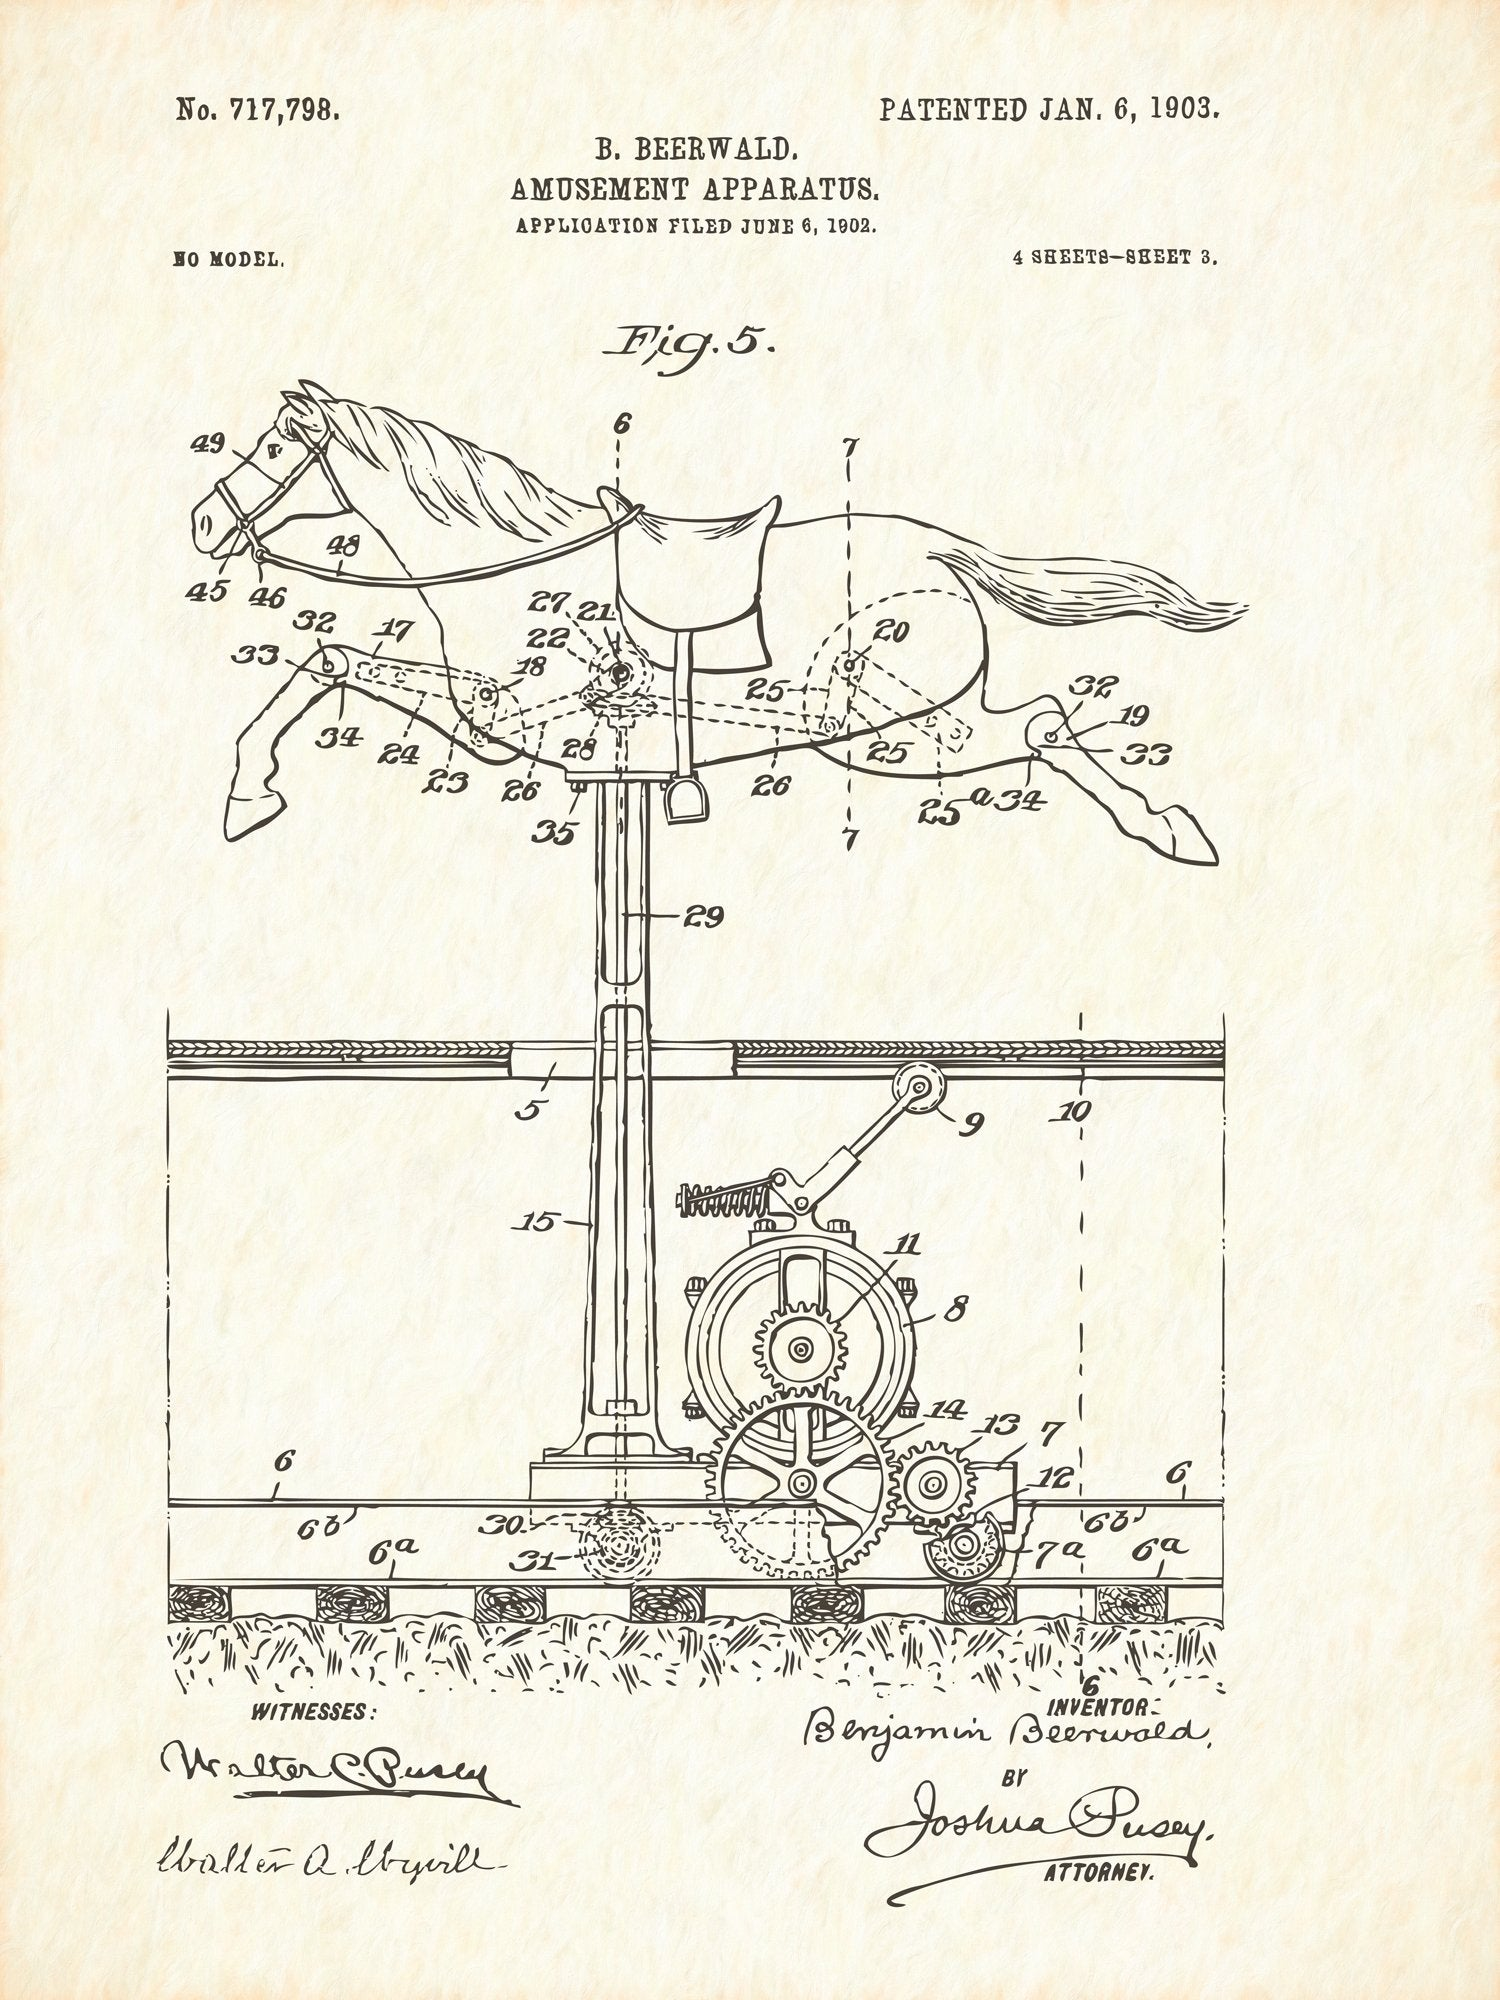 U.S. Patent No. 717798-3 Amusement Apparatus Reworked, Series 1